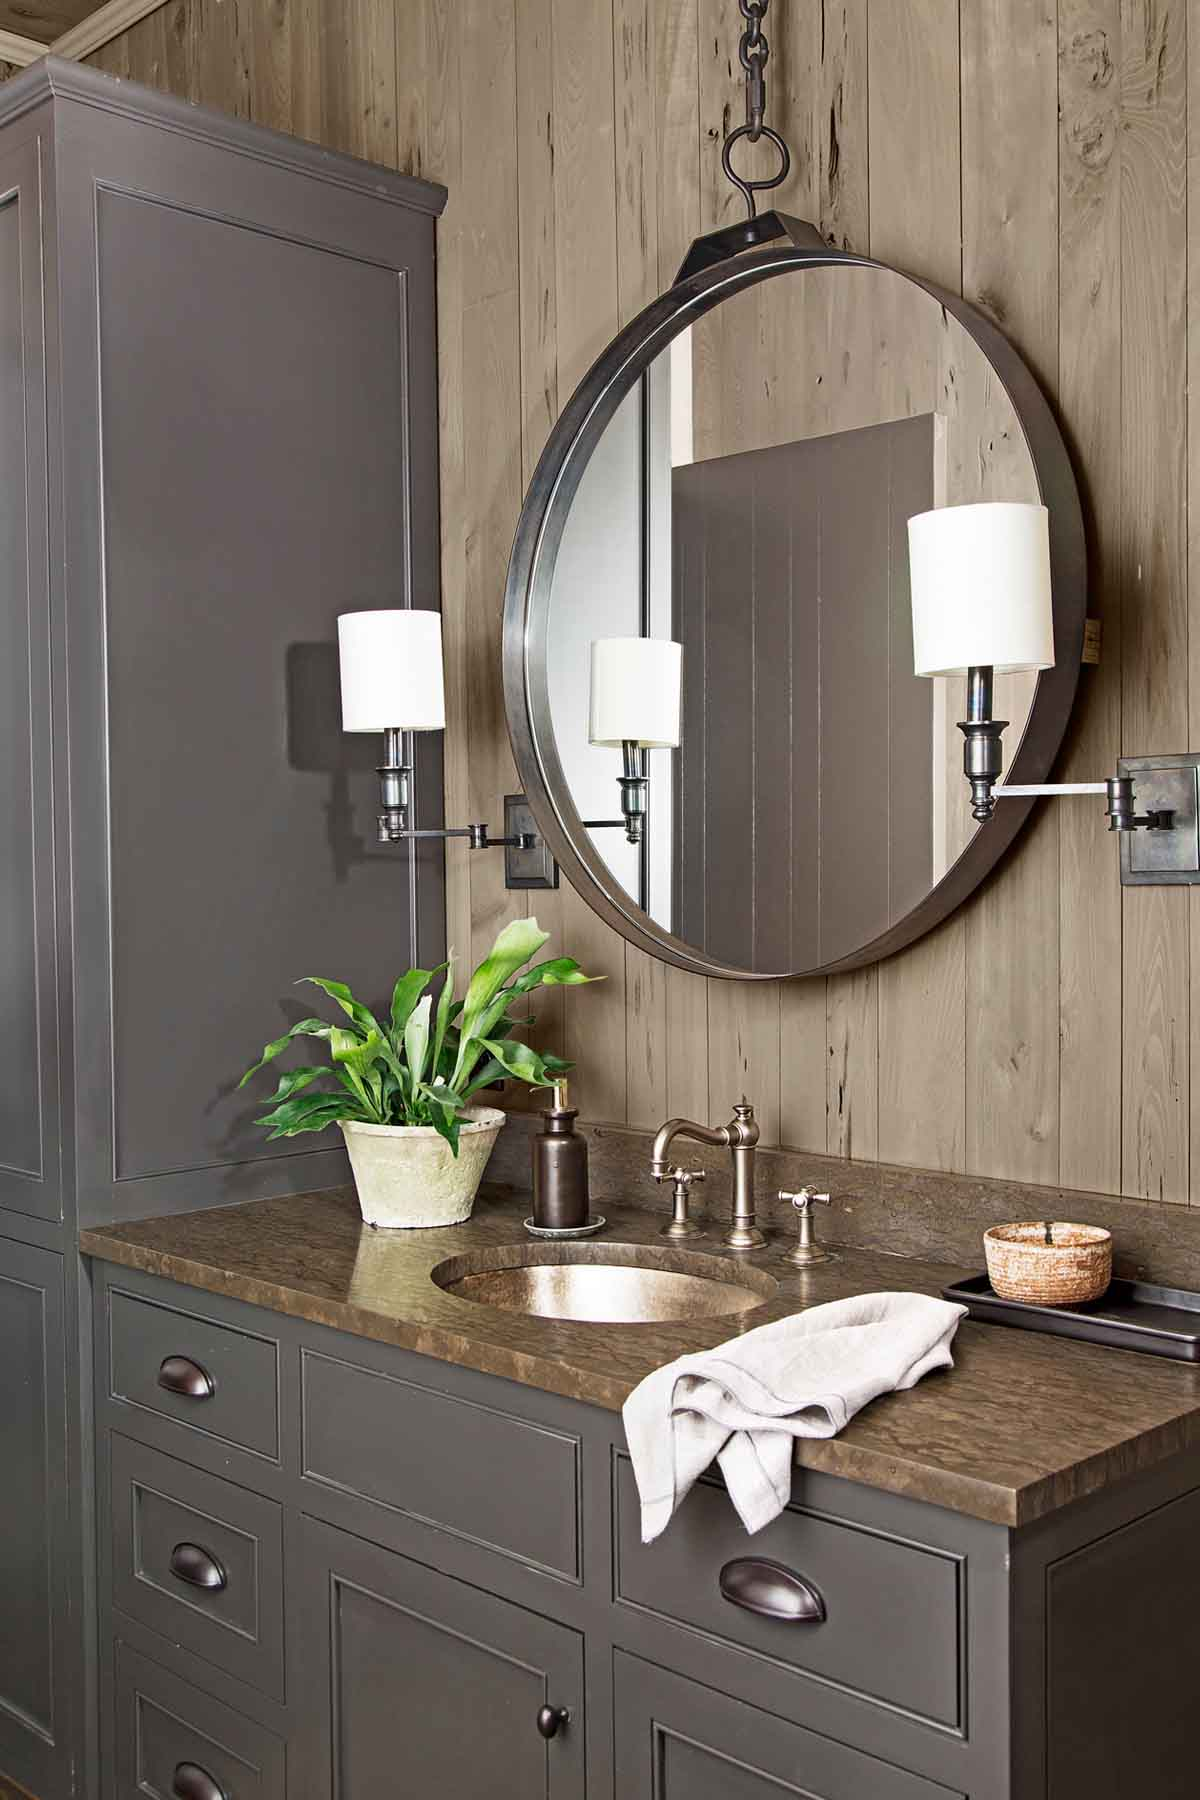 Design Rustic Bathroom 37 rustic bathroom decor ideas modern designs